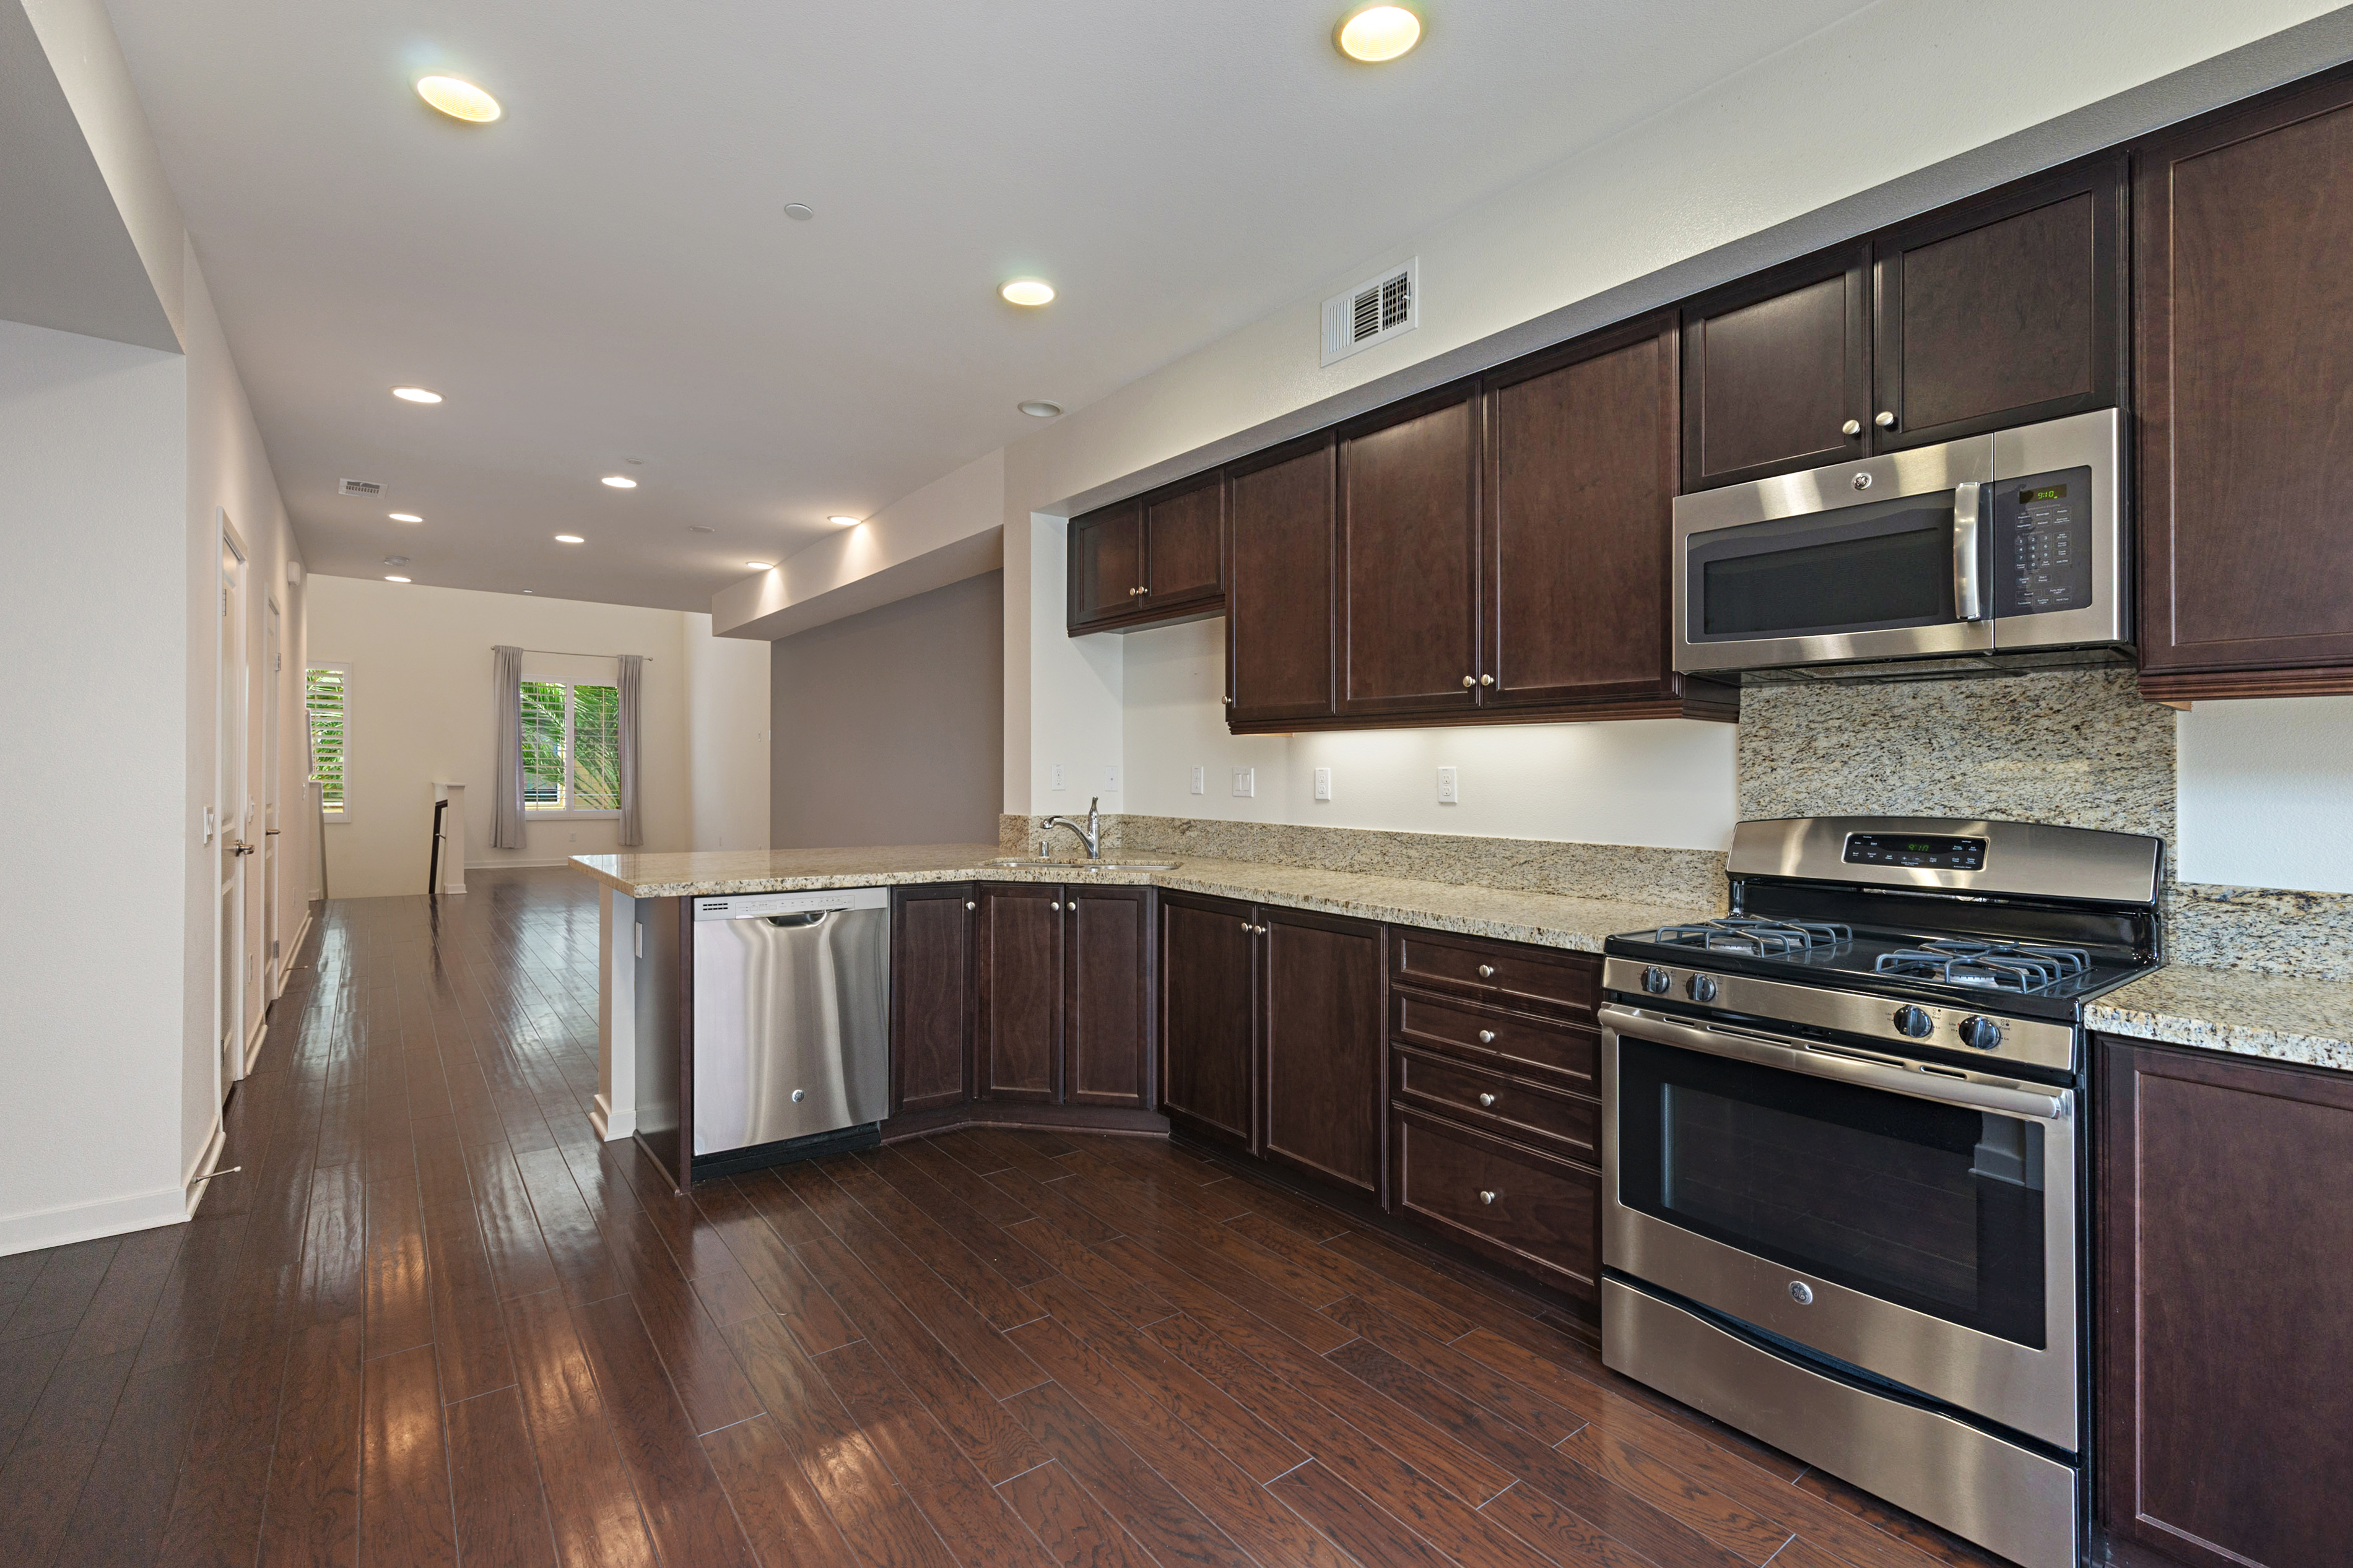 Central Park West Featured Properties The Souss 233 Group